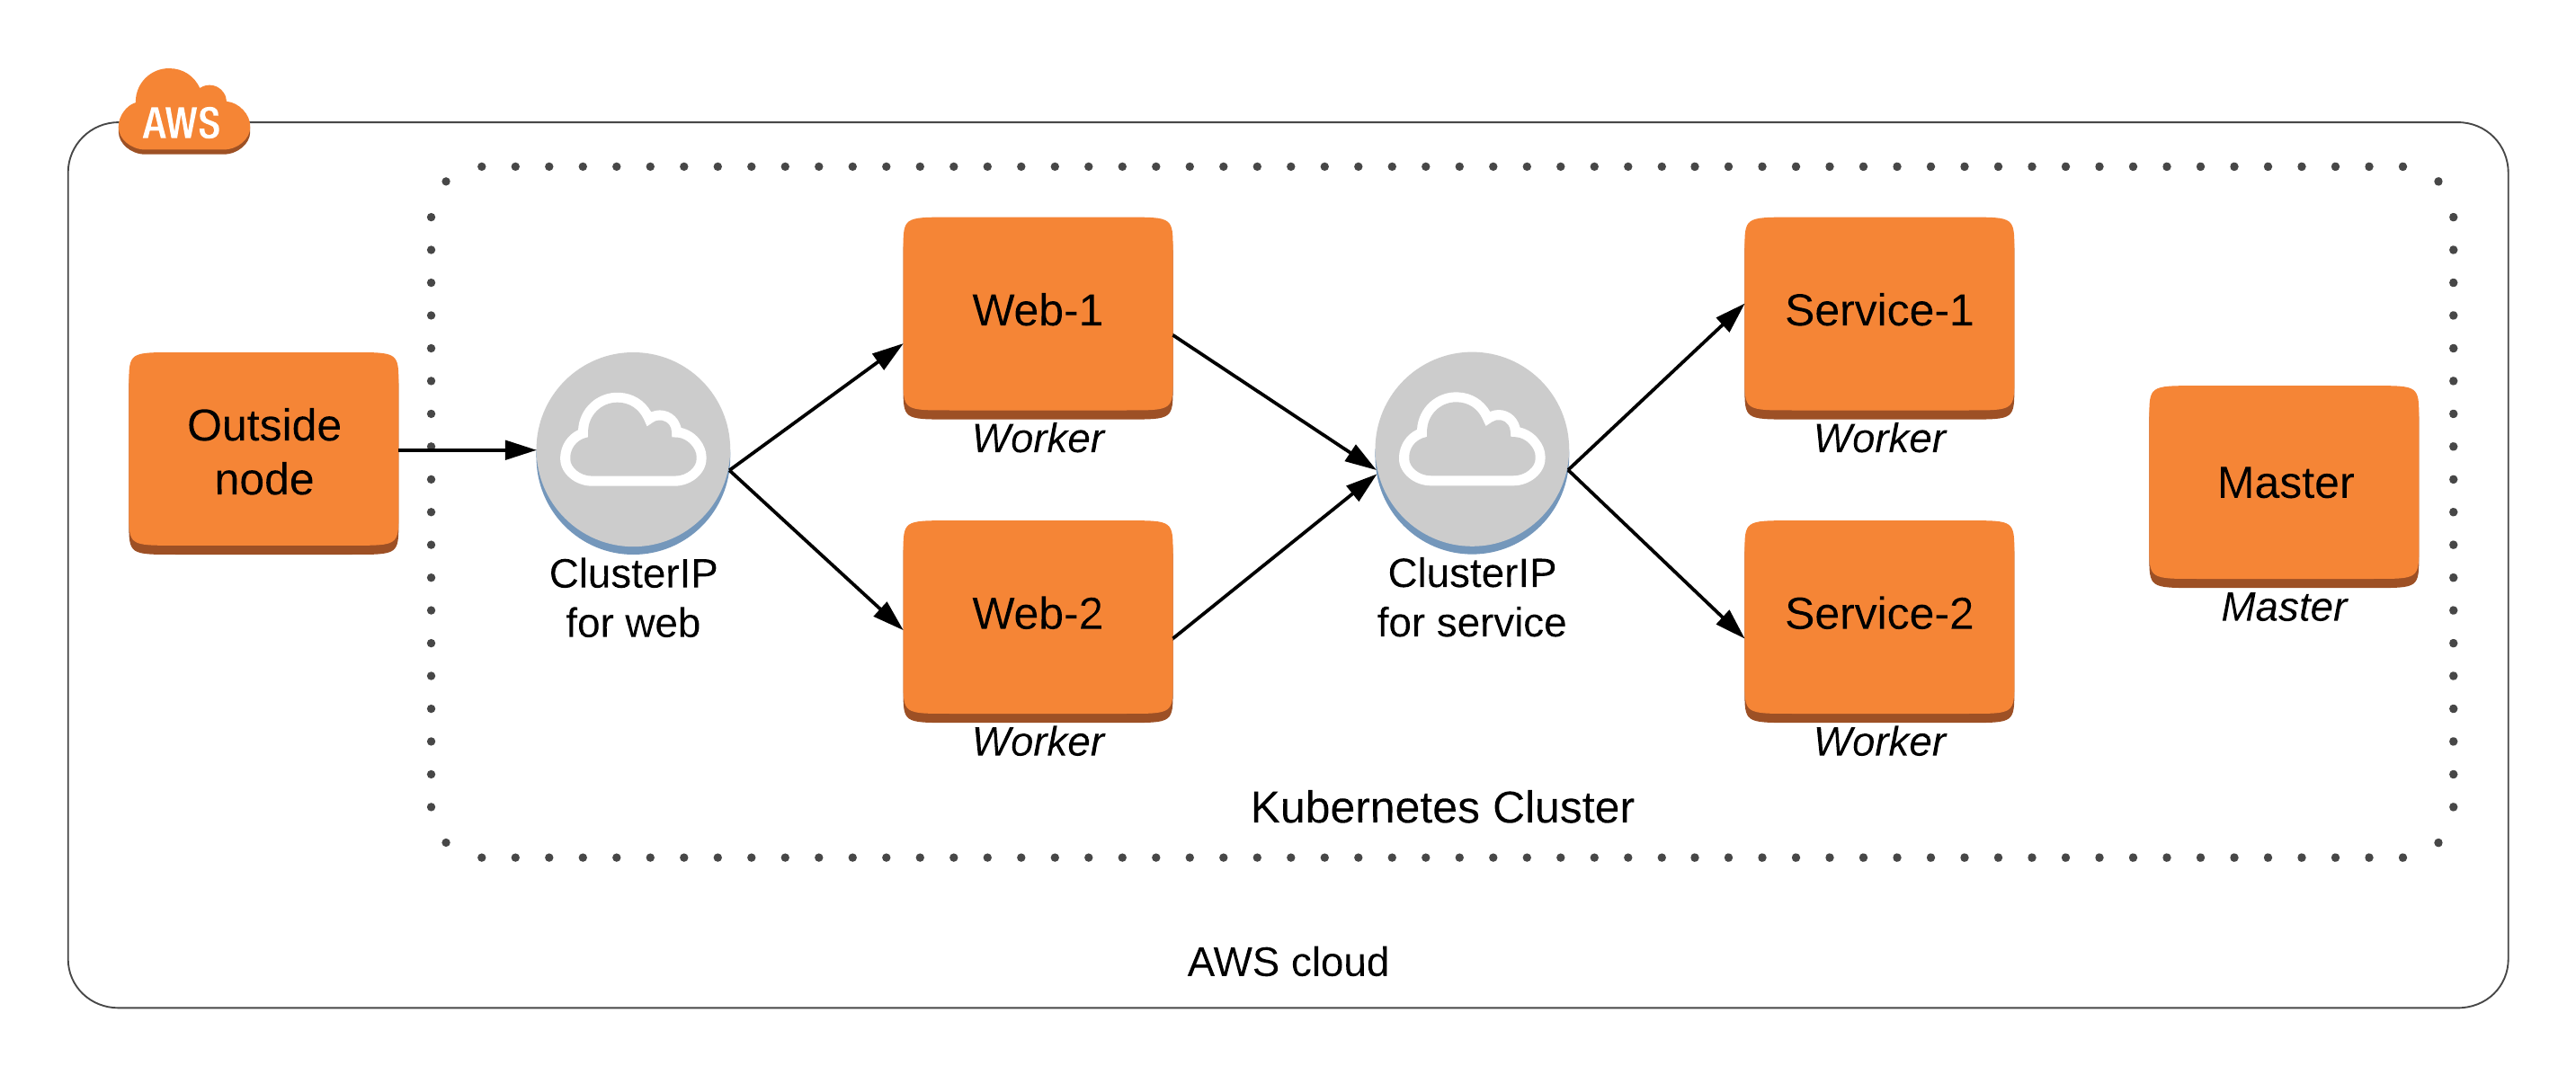 Architecture of the sample deployment.